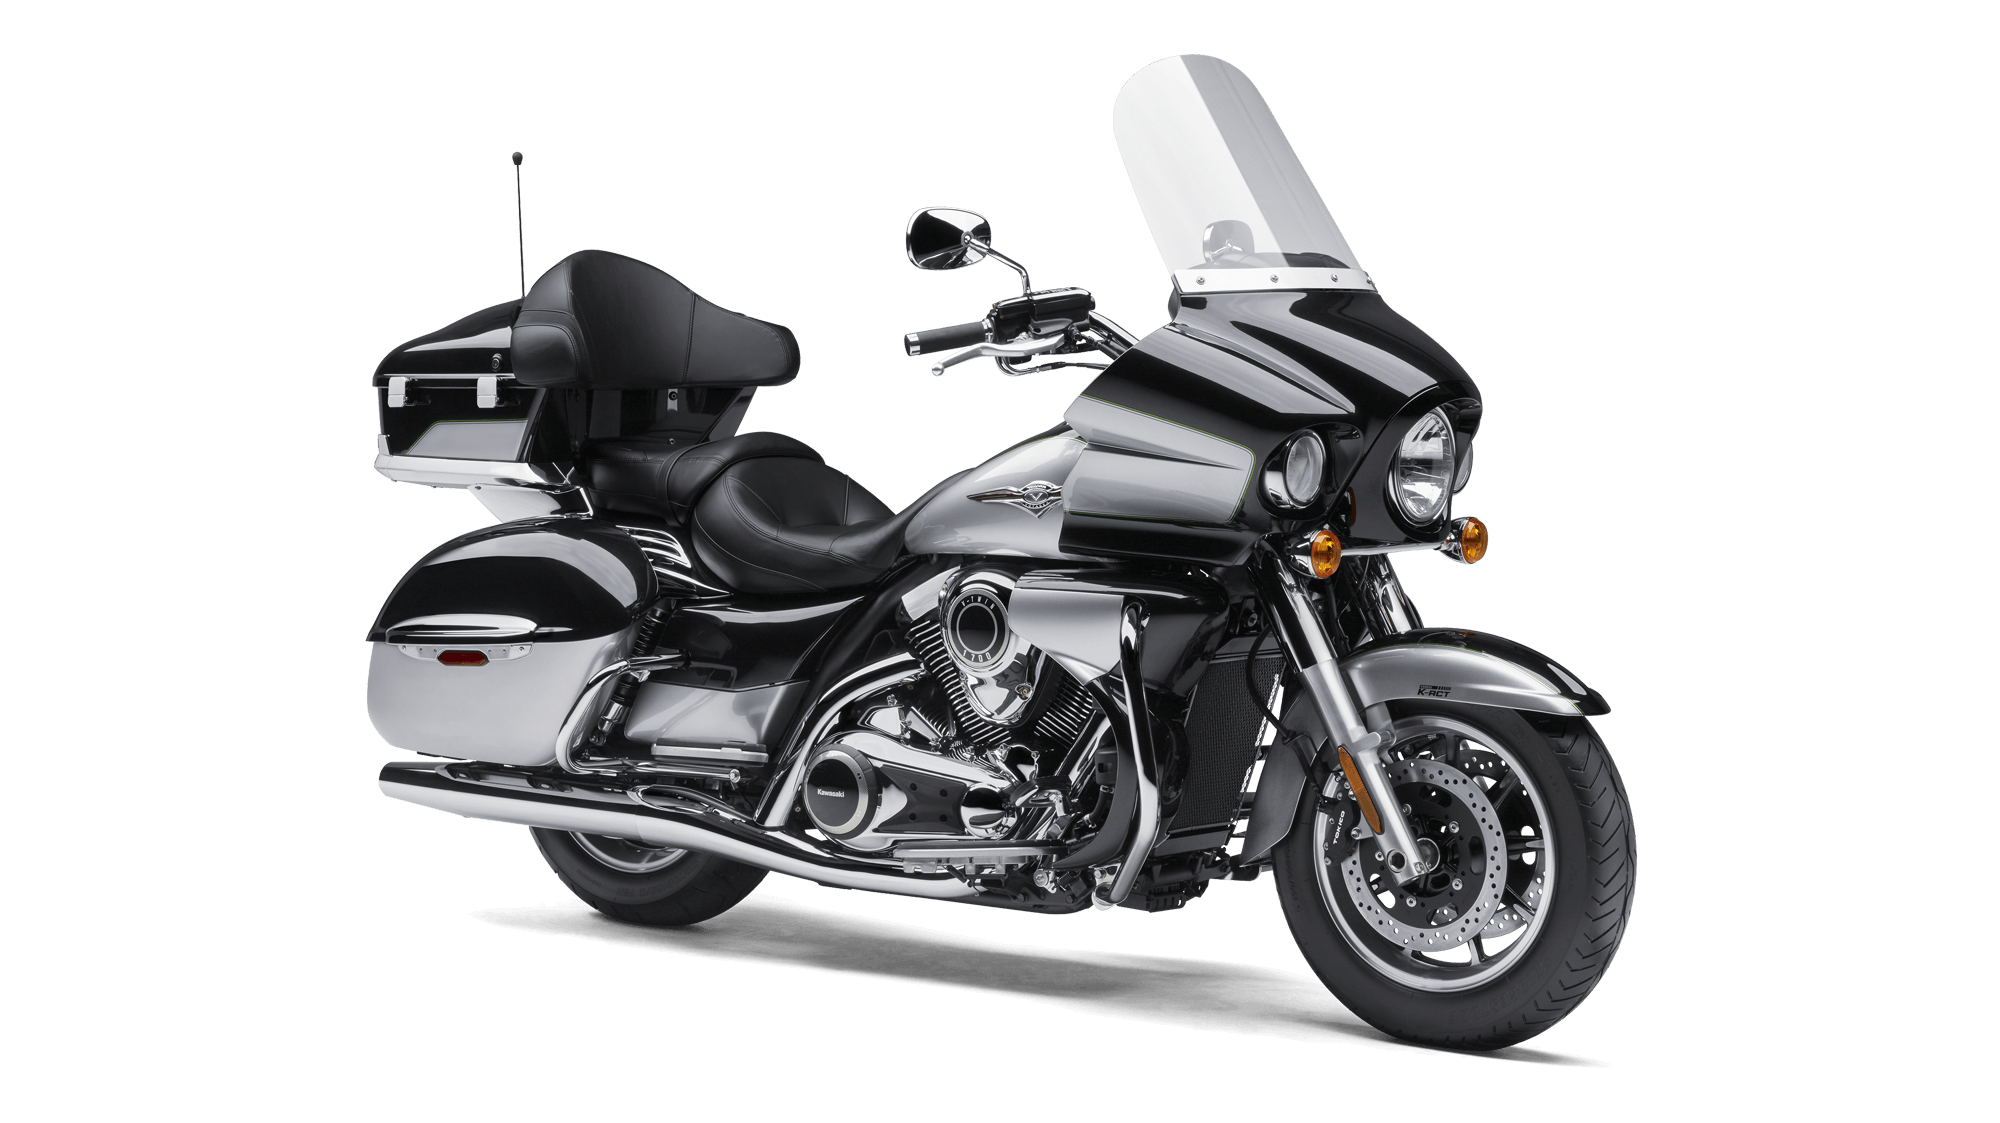 2017 VULCAN 1700 VOYAGER ABS